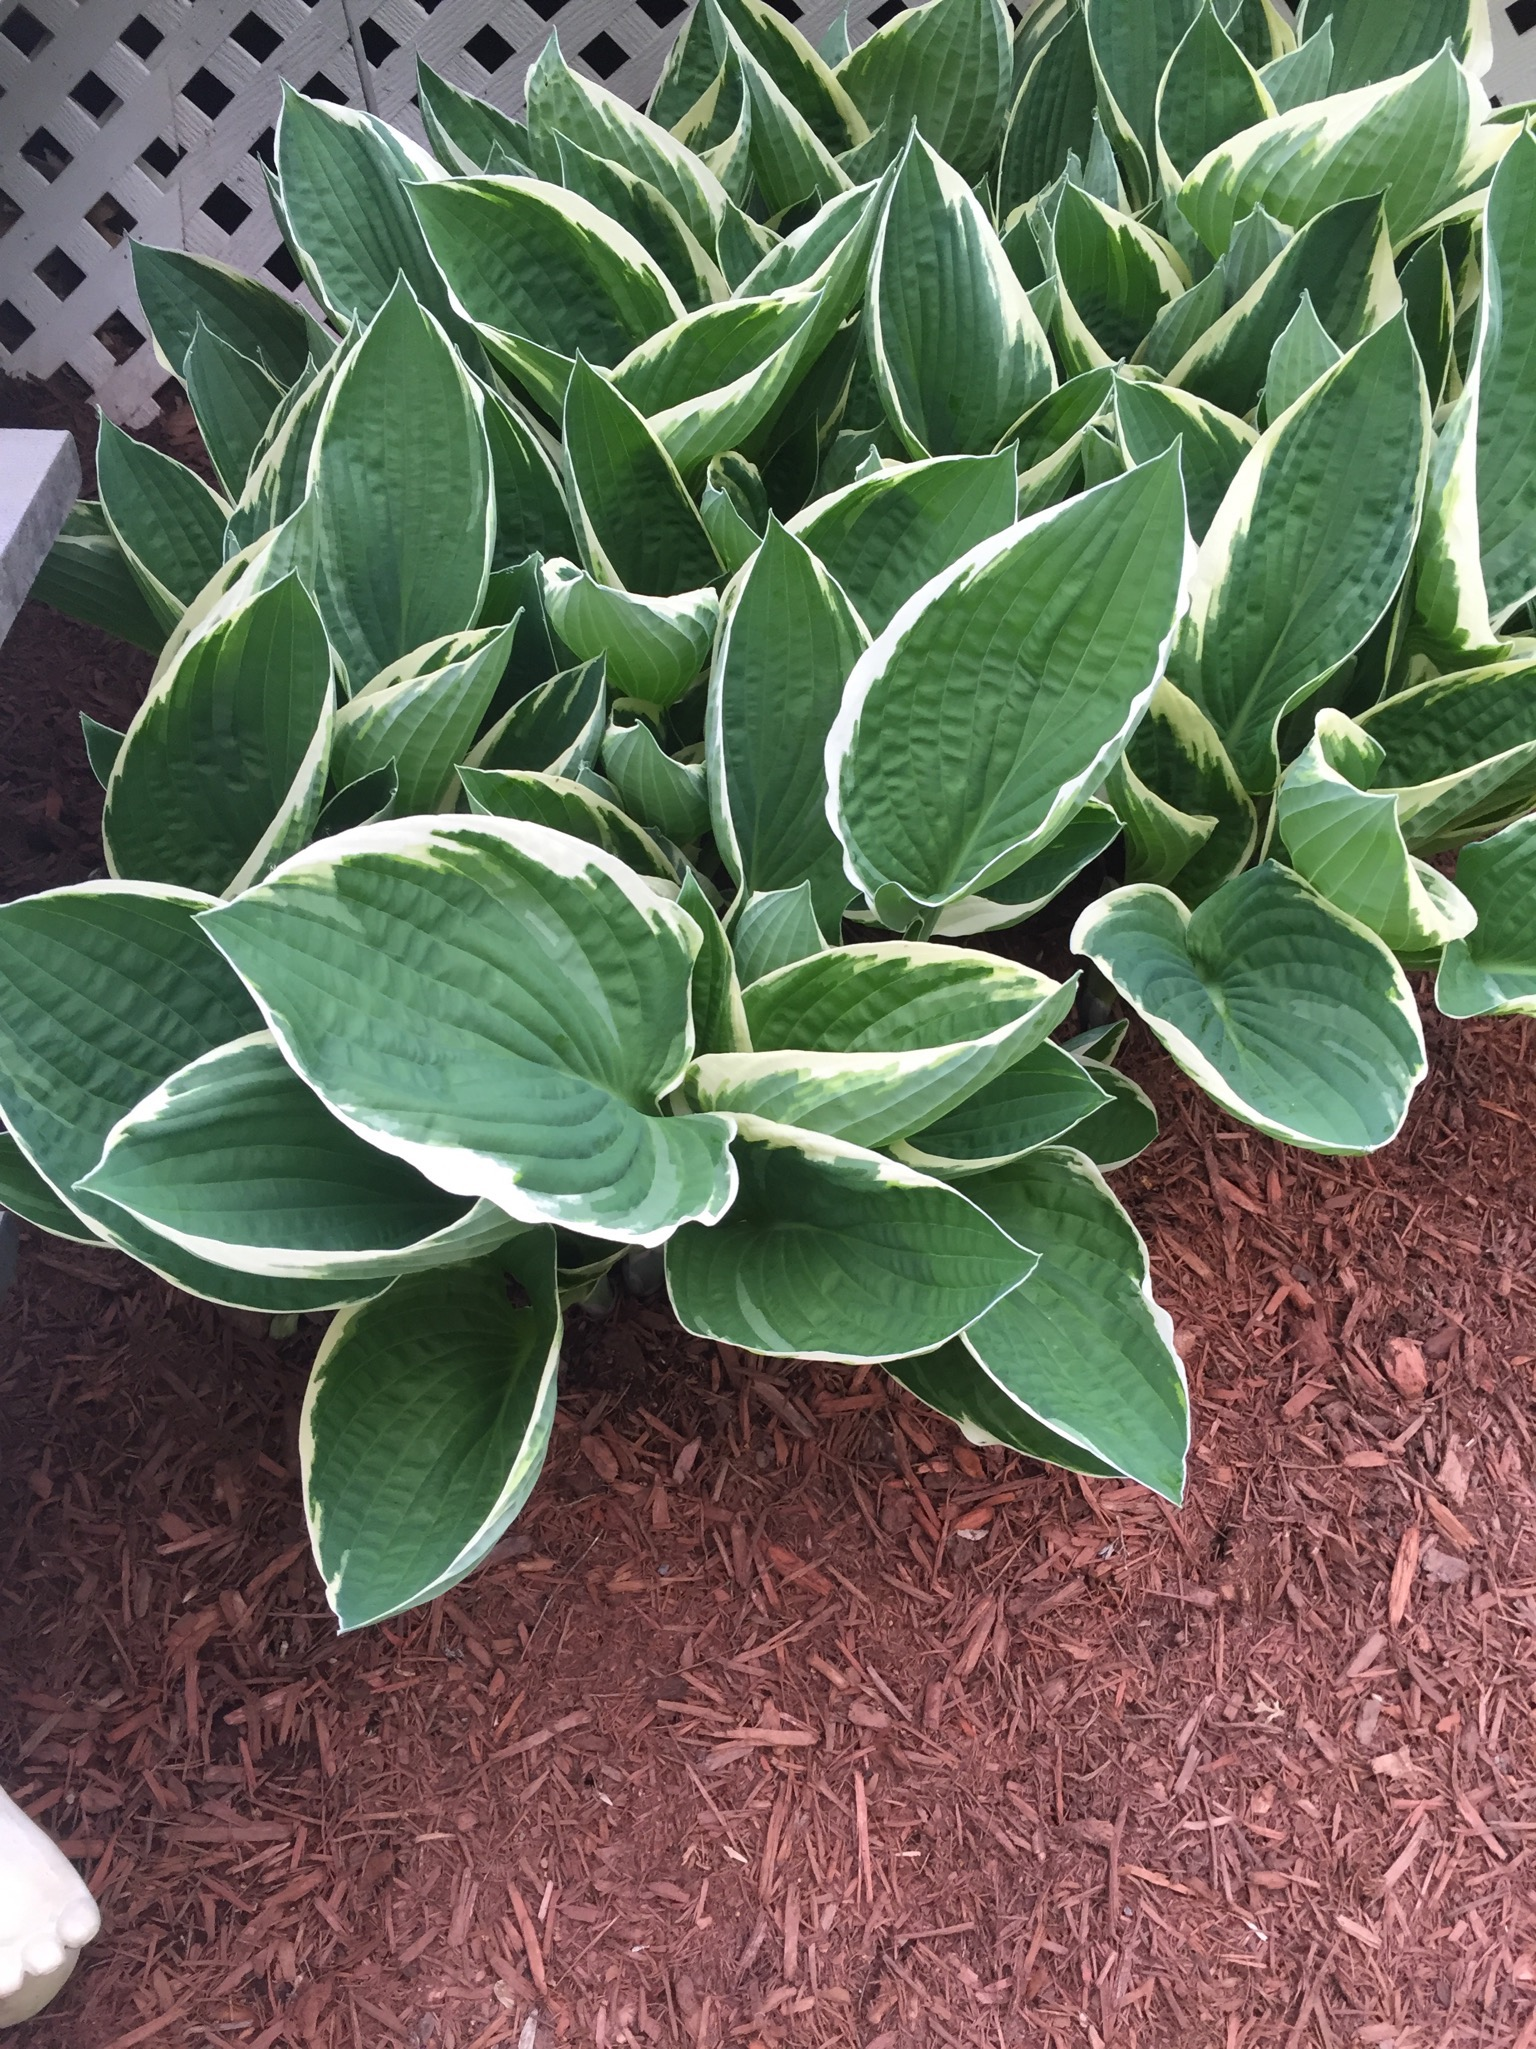 Planting of Hosta in East Lyme, CT